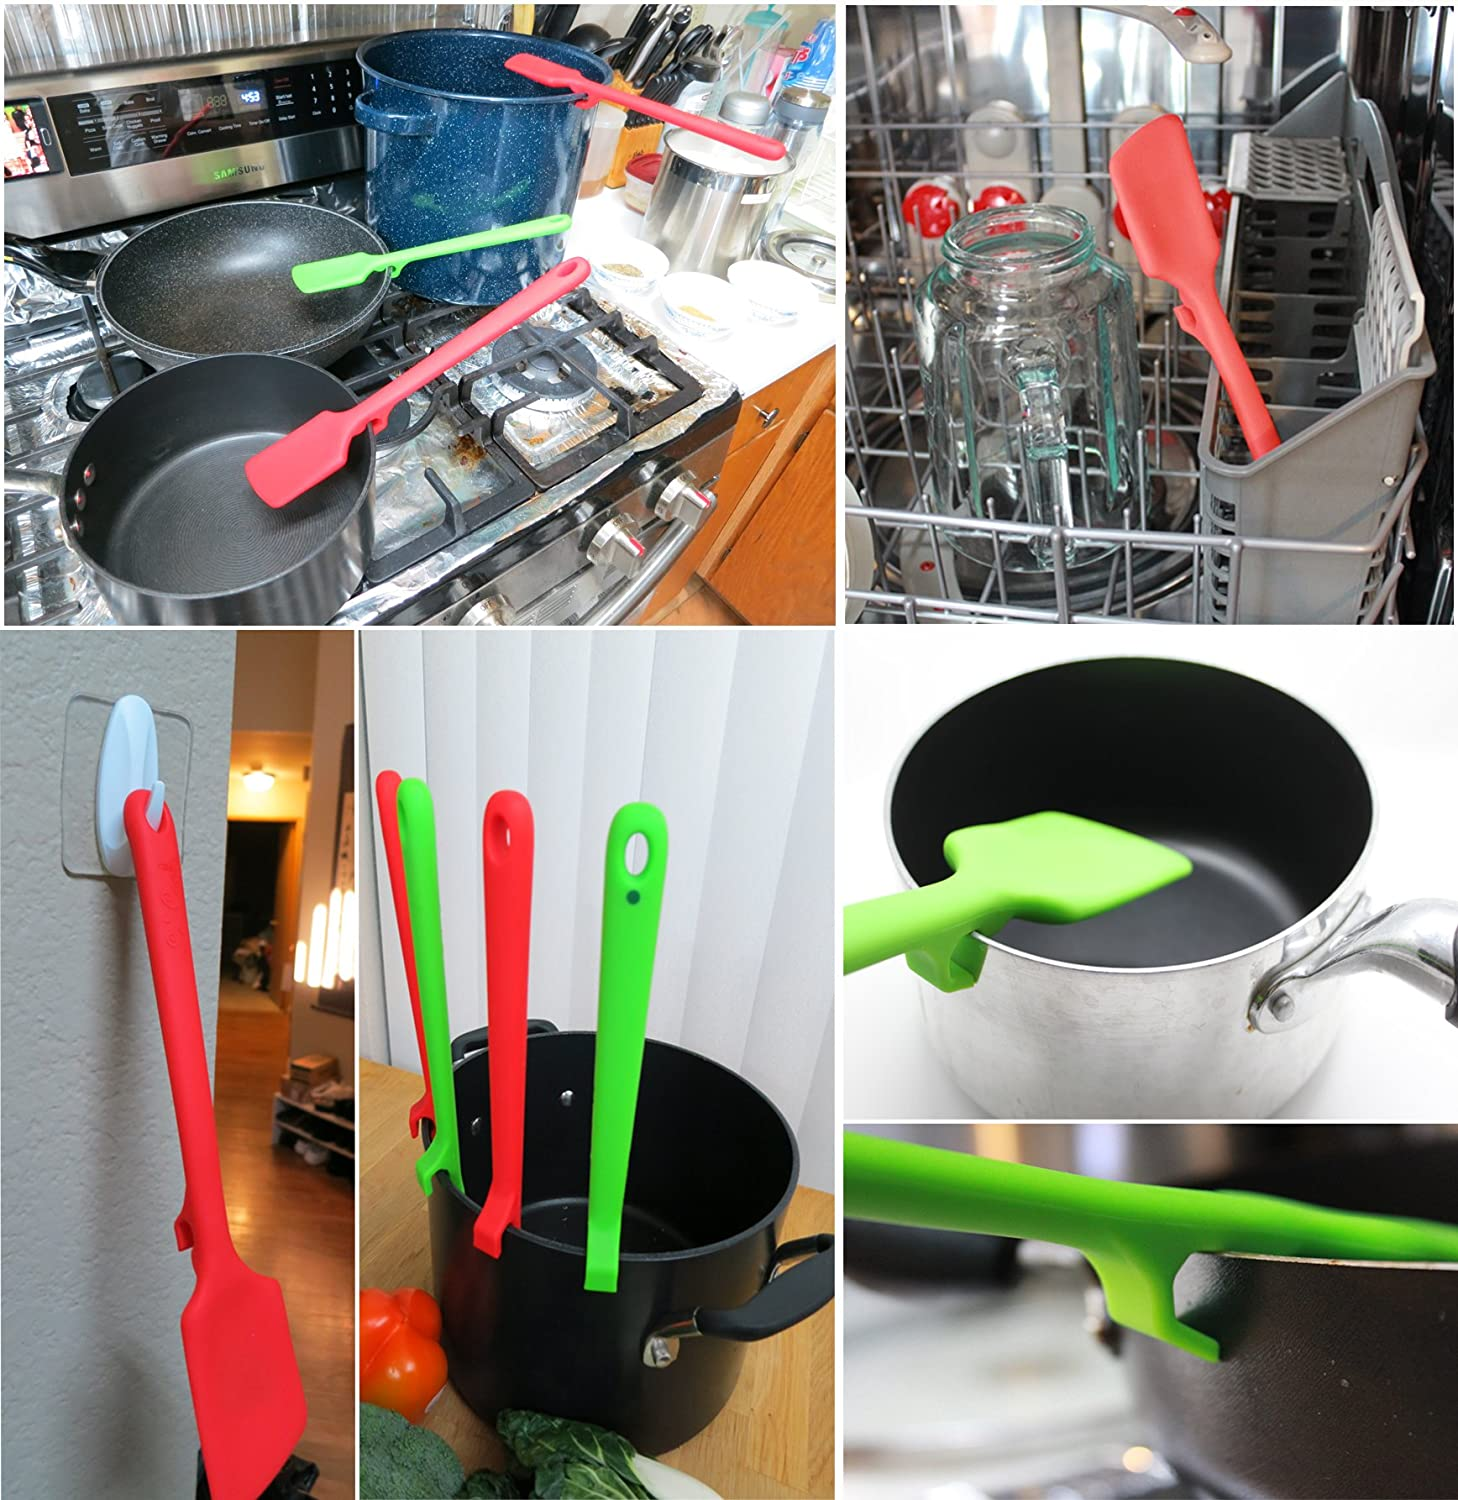 Premium One Body with super strong Nylon Core Cooking Spoonula with build in Hook to hang the Spoonula on the side of any cooking pan Rintik Le Cook Spoonula Green